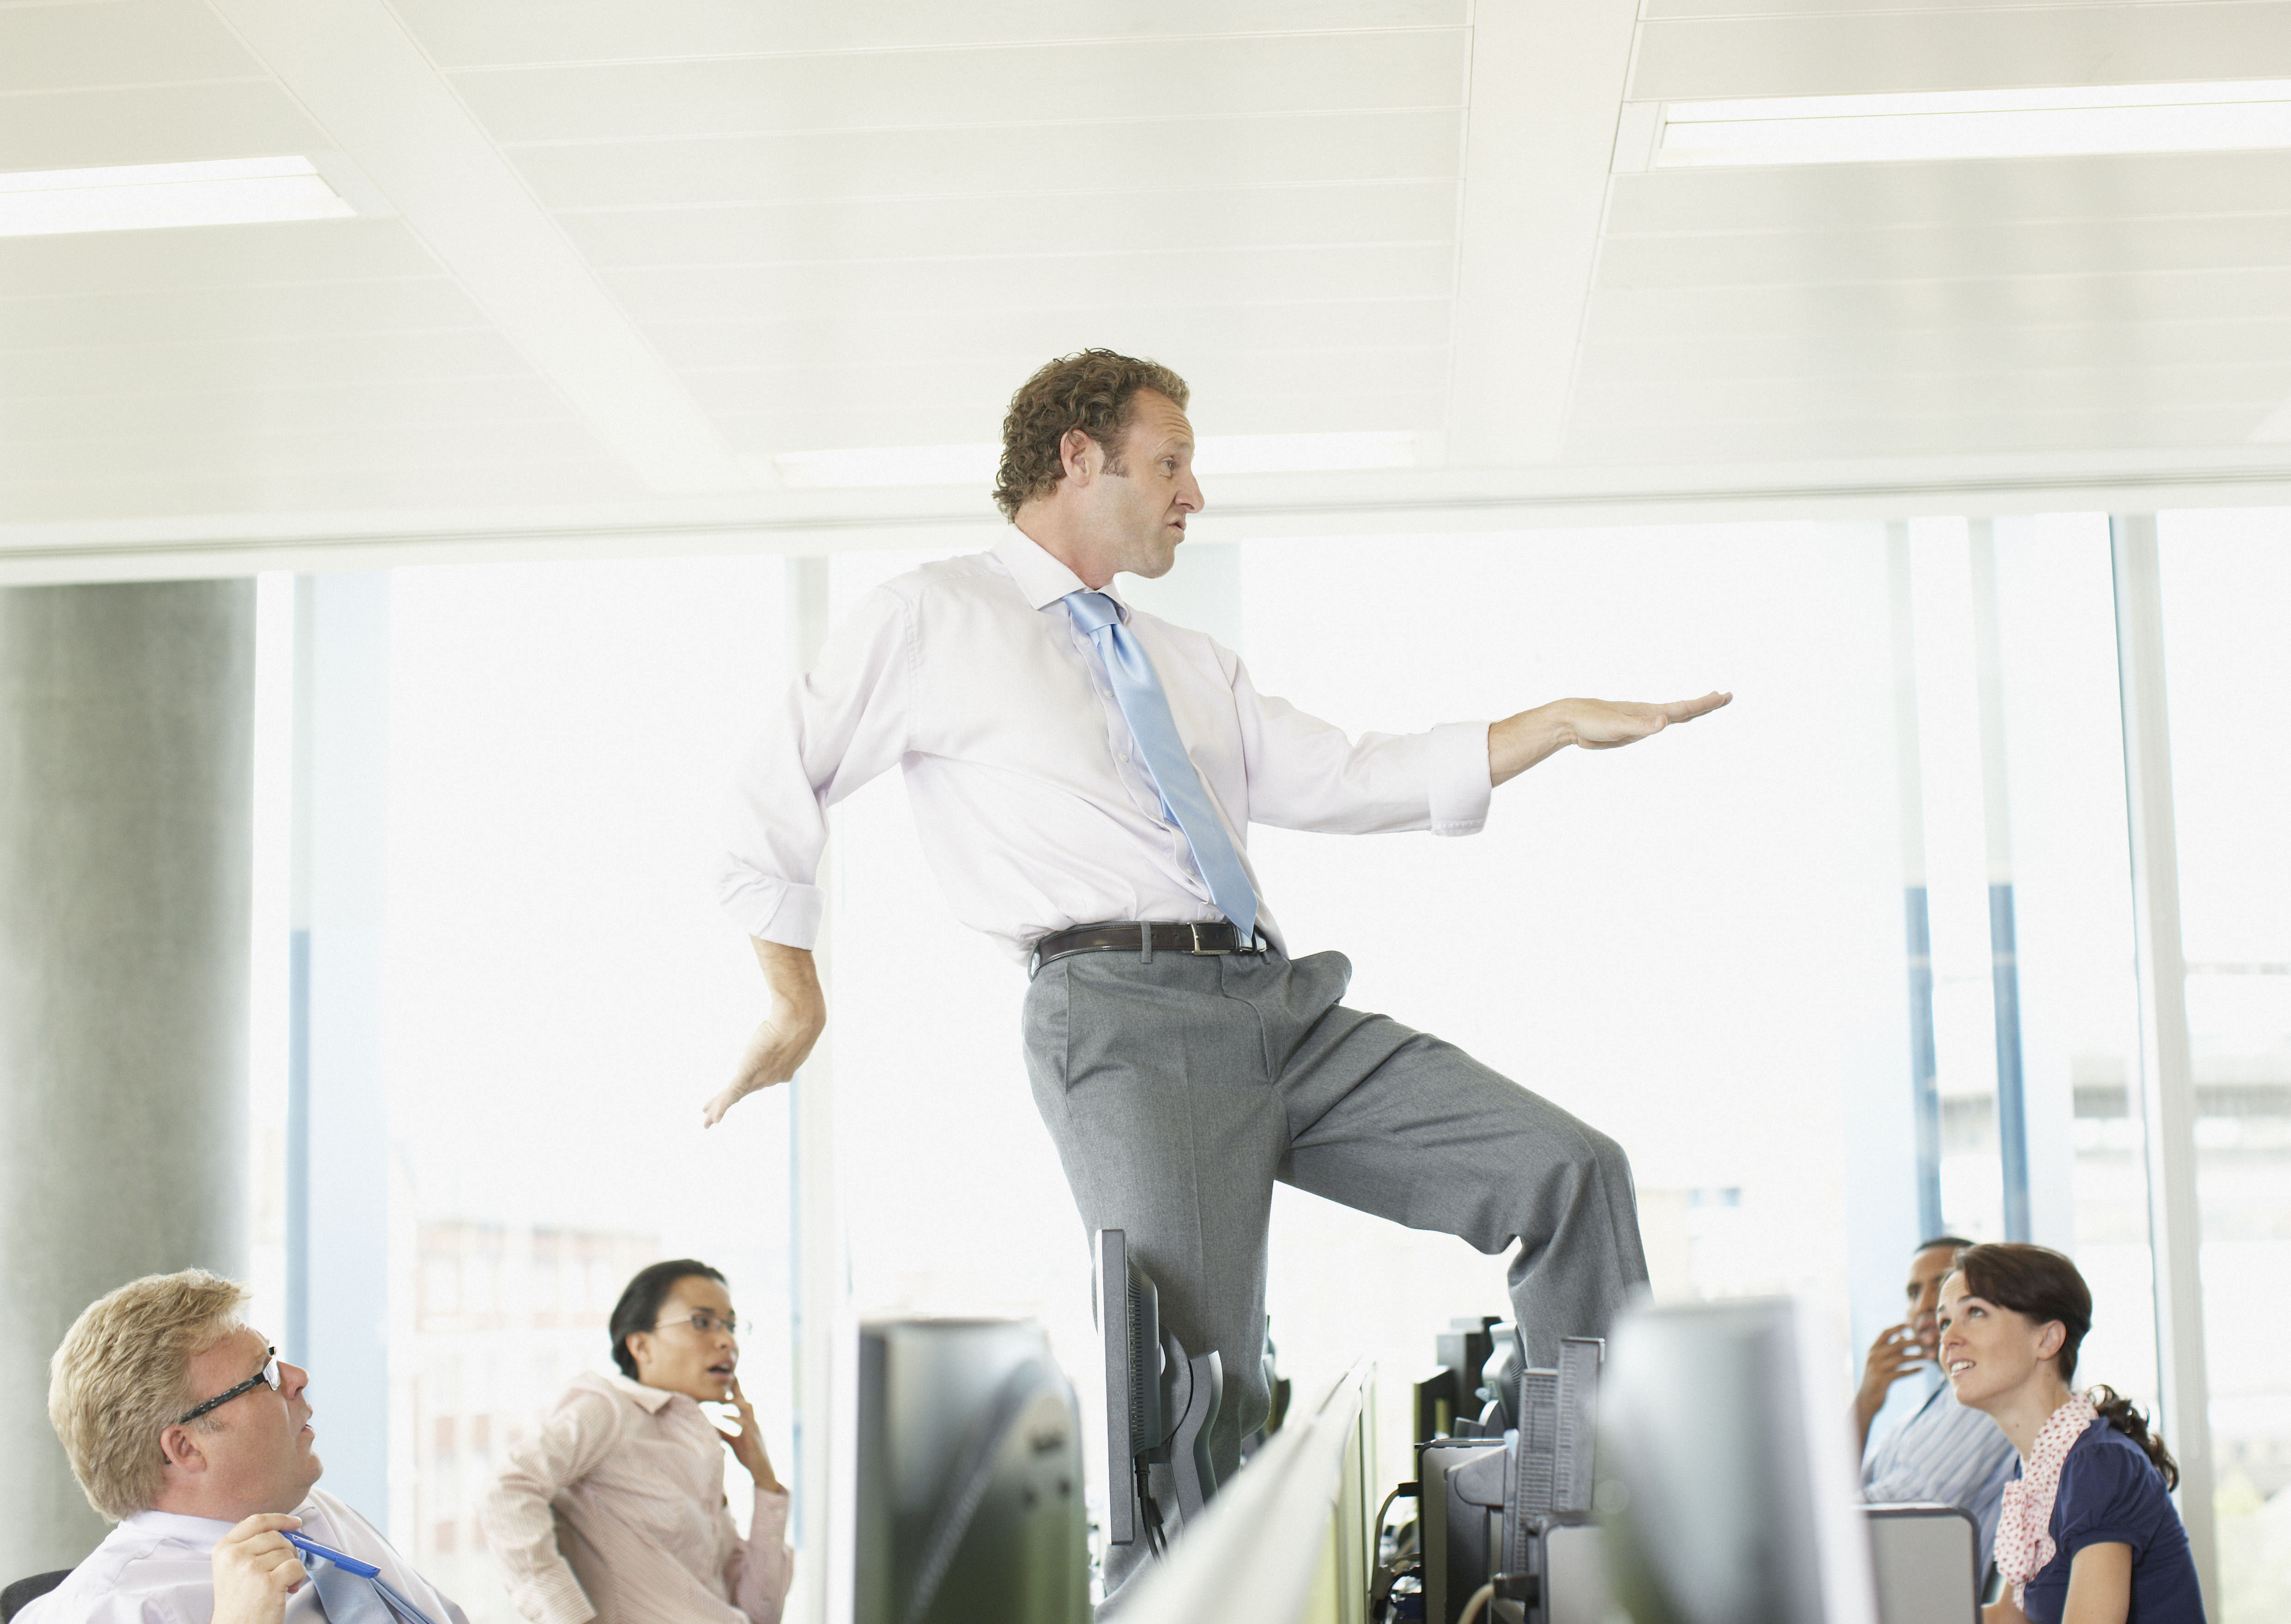 Businessman dancing on cubicle desk